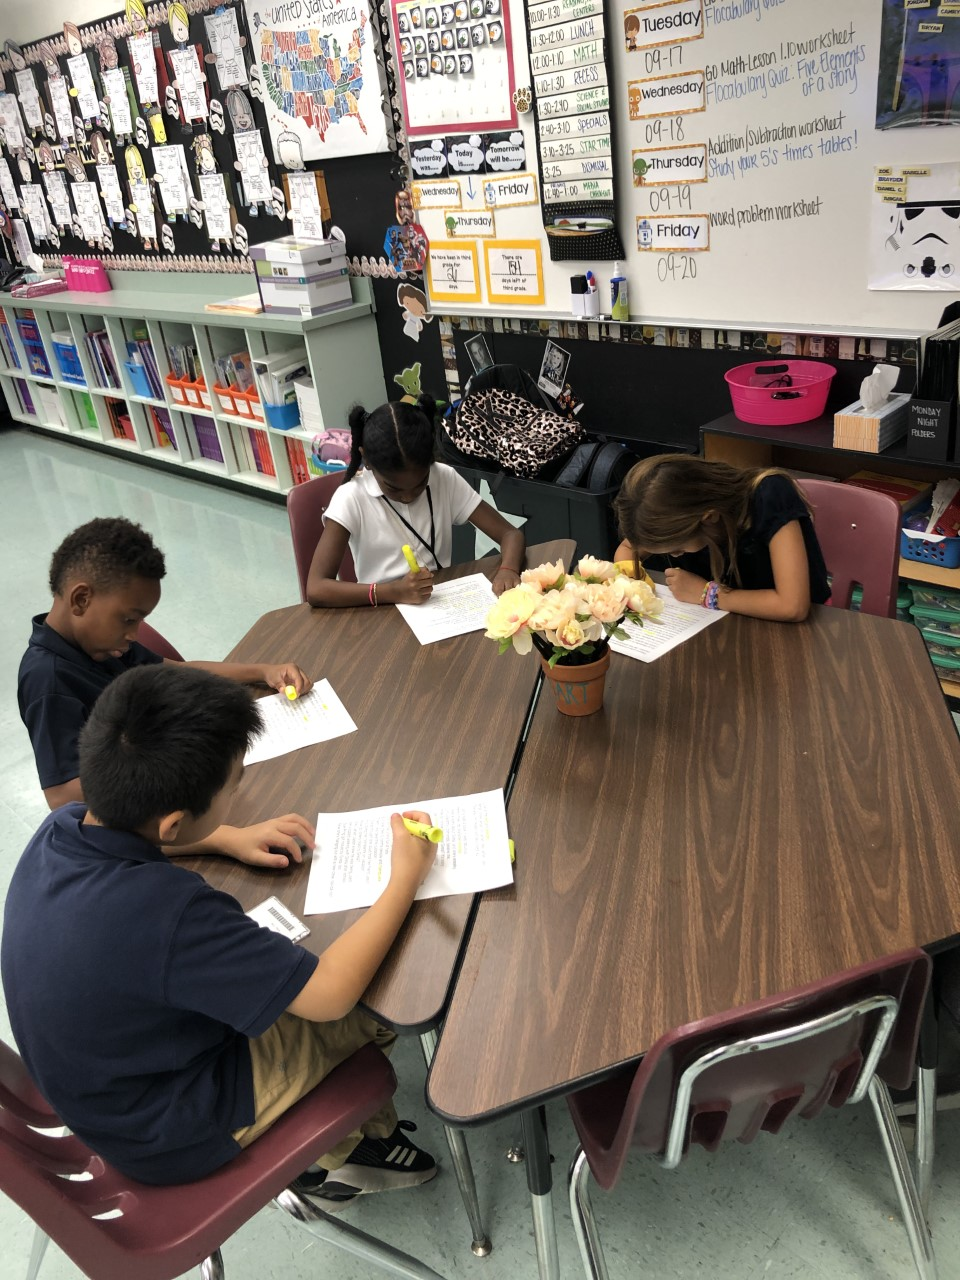 students interpret lyrics of Flocabulary videos as part of small group instruction to learn figurative language and vocabulary